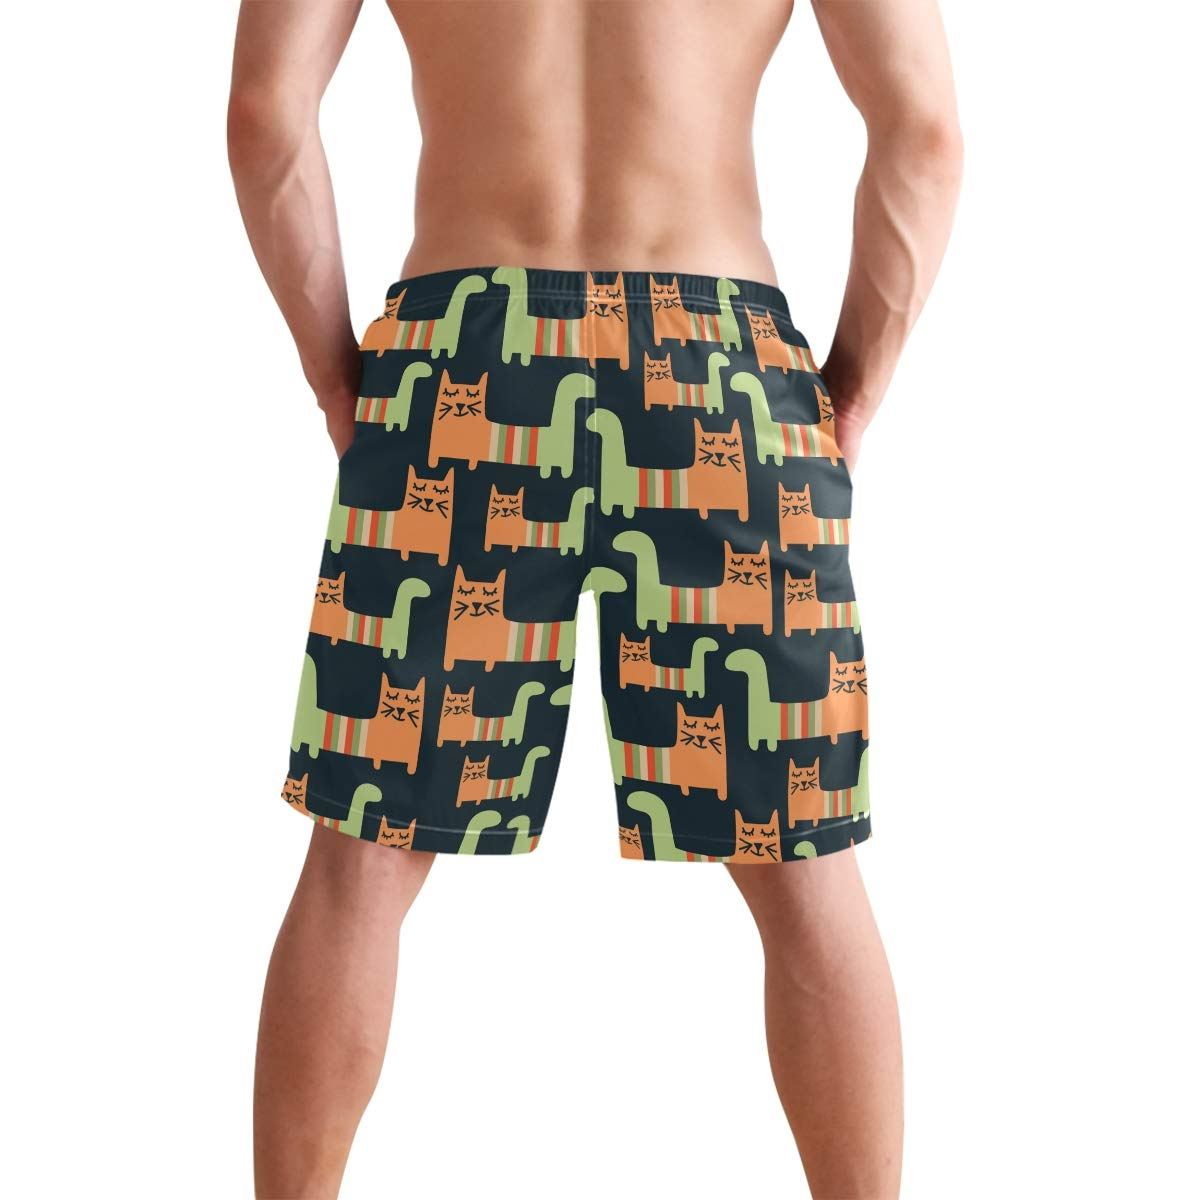 Funny Cartoon Cat Mens Swim Trunks Quick Dry Beach Board Shorts with Drawstring Pocket